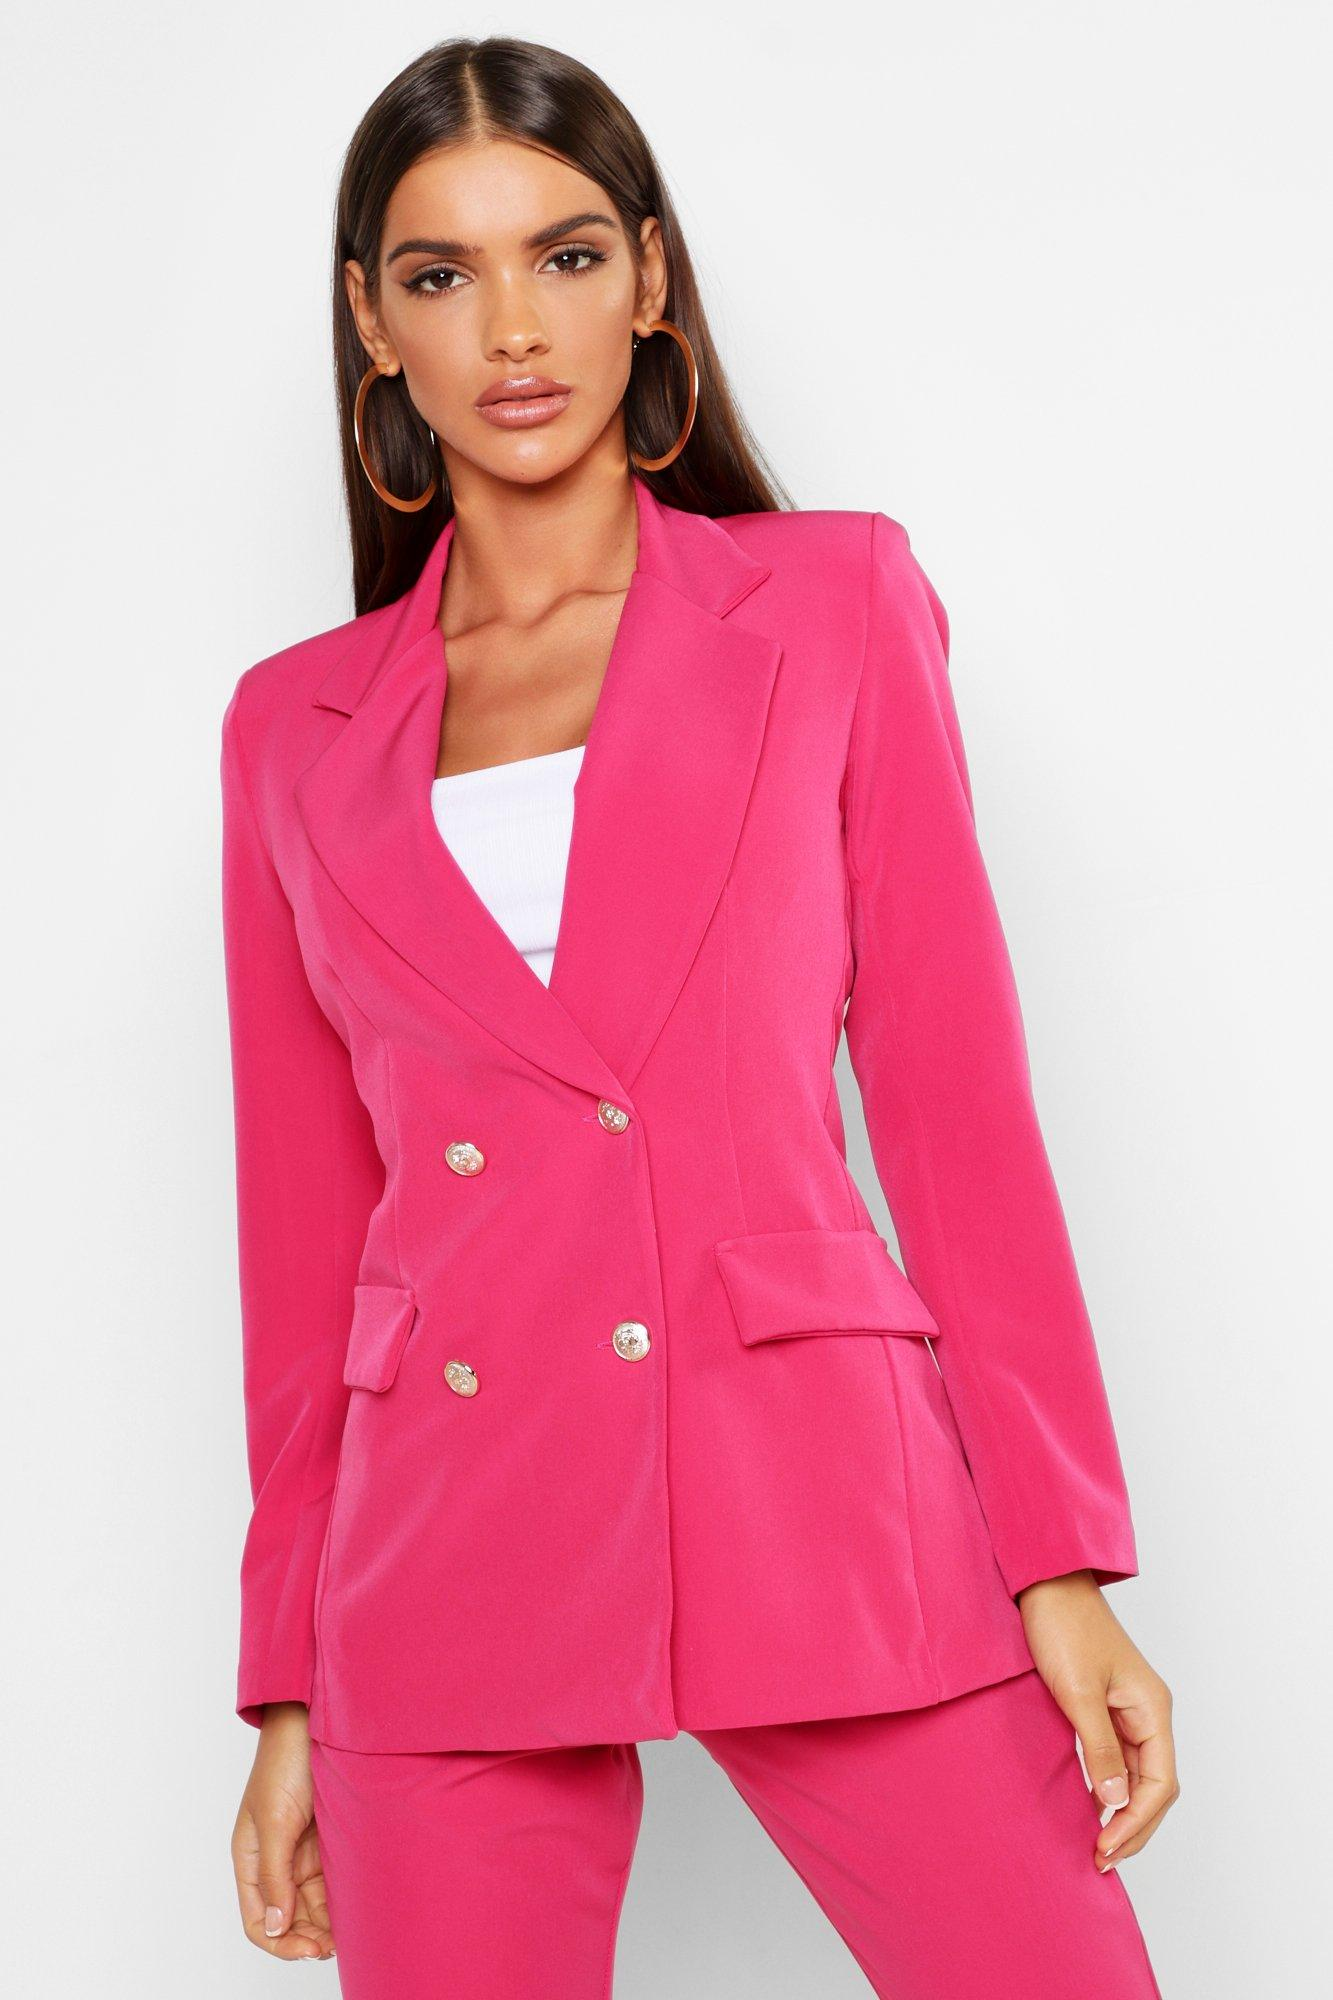 boohoo Womens Double Breasted Boxy Military Blazer - Pink - 8, Pink